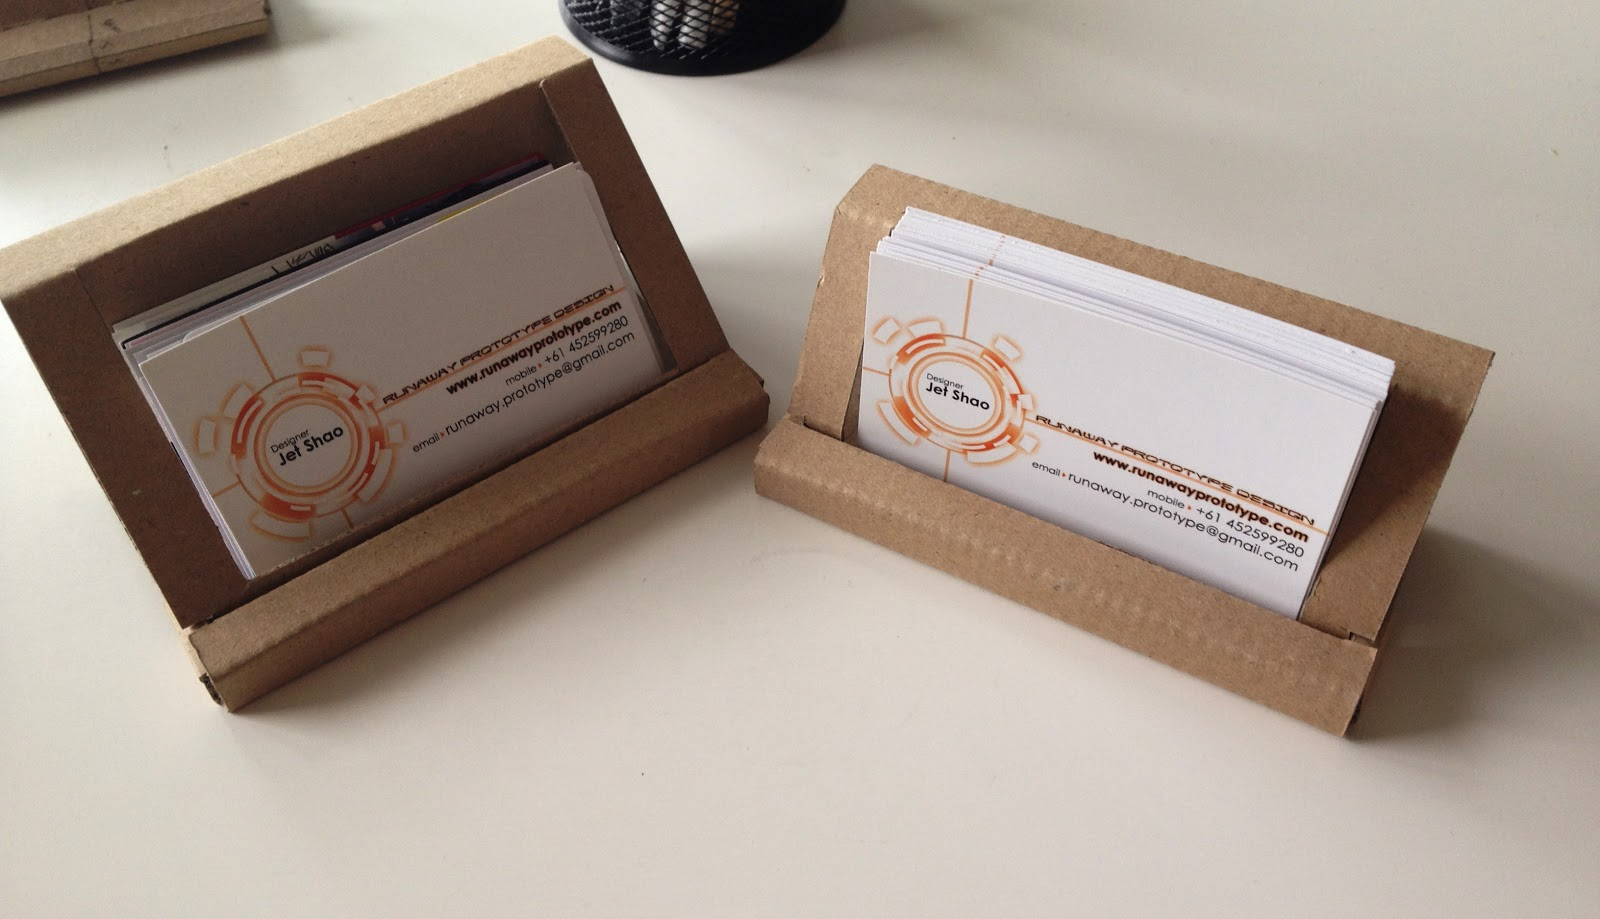 Cardboard business cards unlimitedgamers cardboard business card holders best business cards wajeb Choice Image